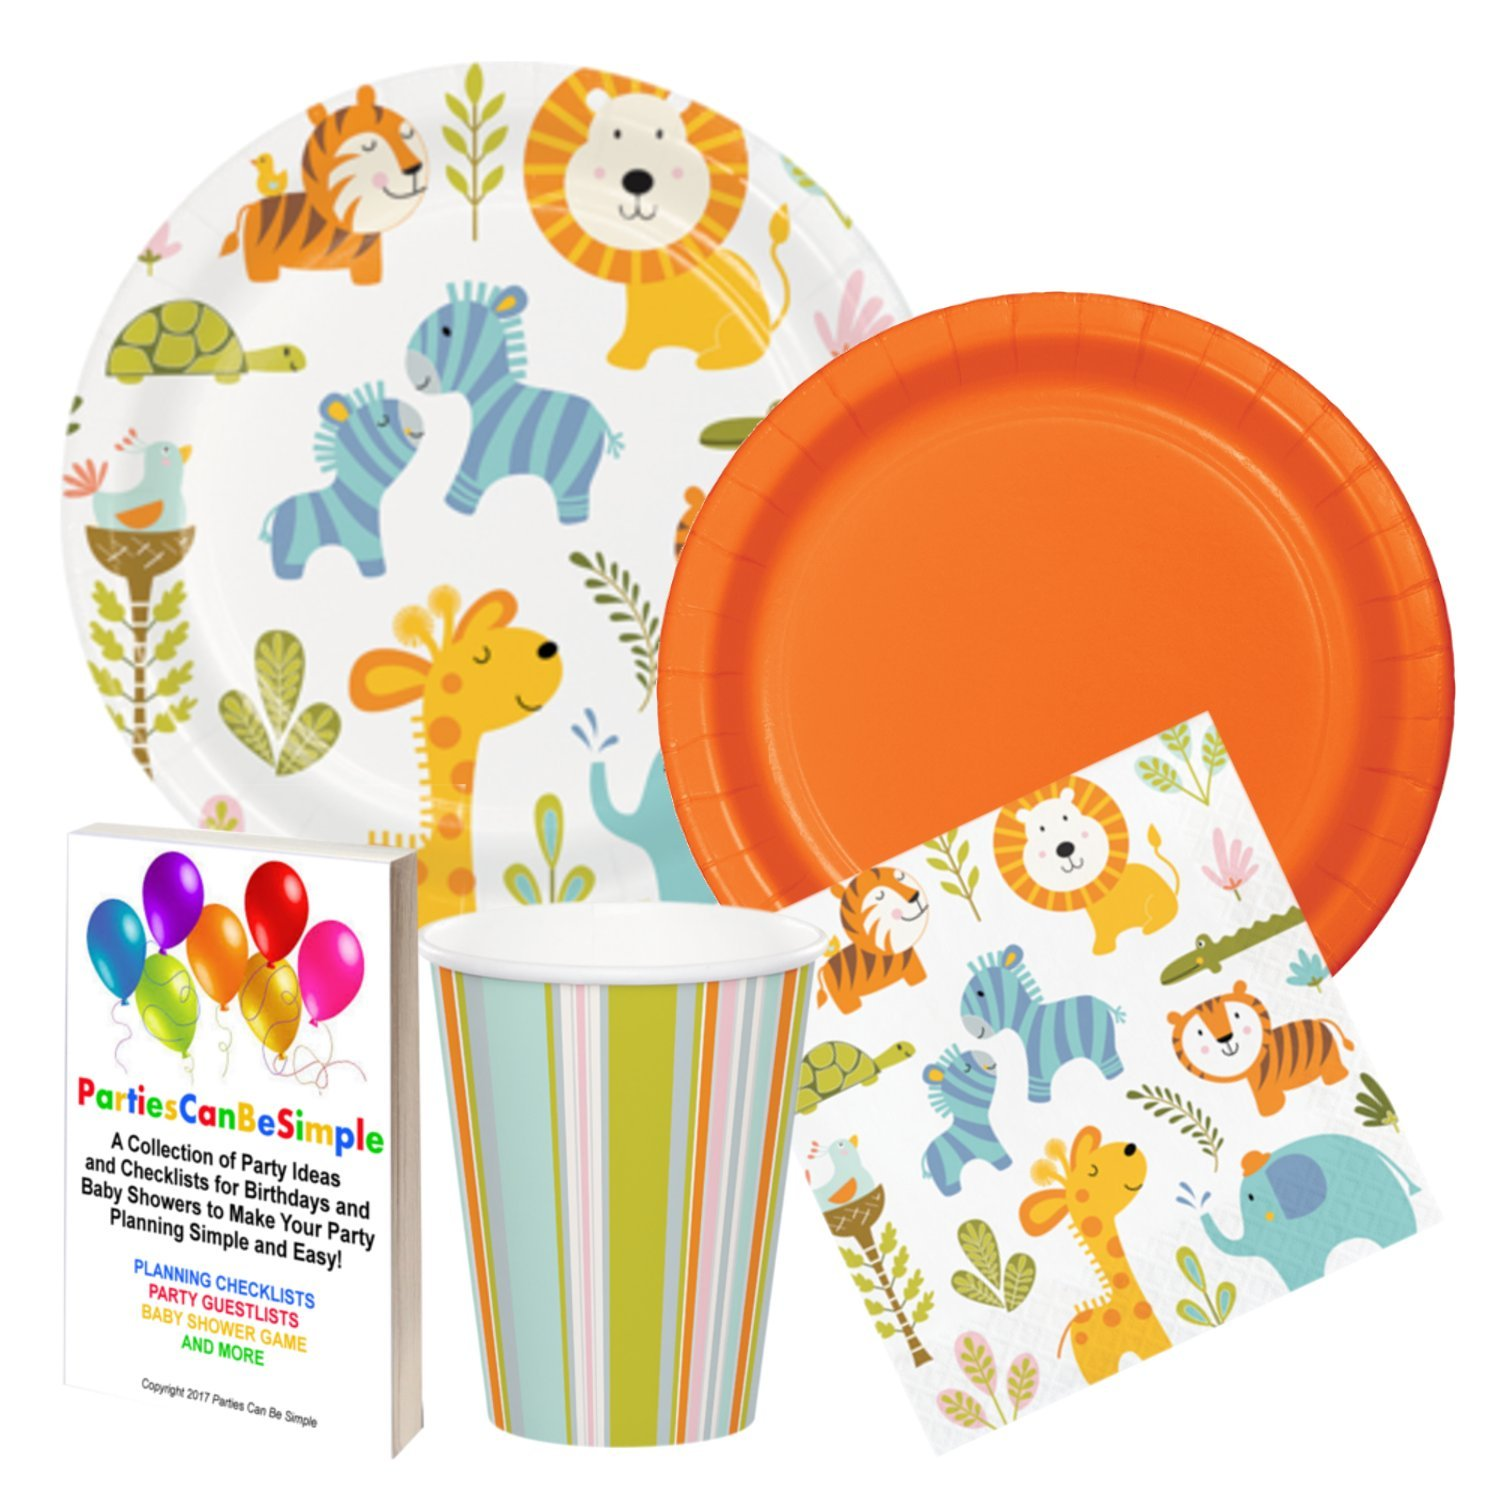 Baby Jungle Animals Baby Shower Party Supplies Plates Napkins Cups for 16 Guests by Parties Can Be Simple